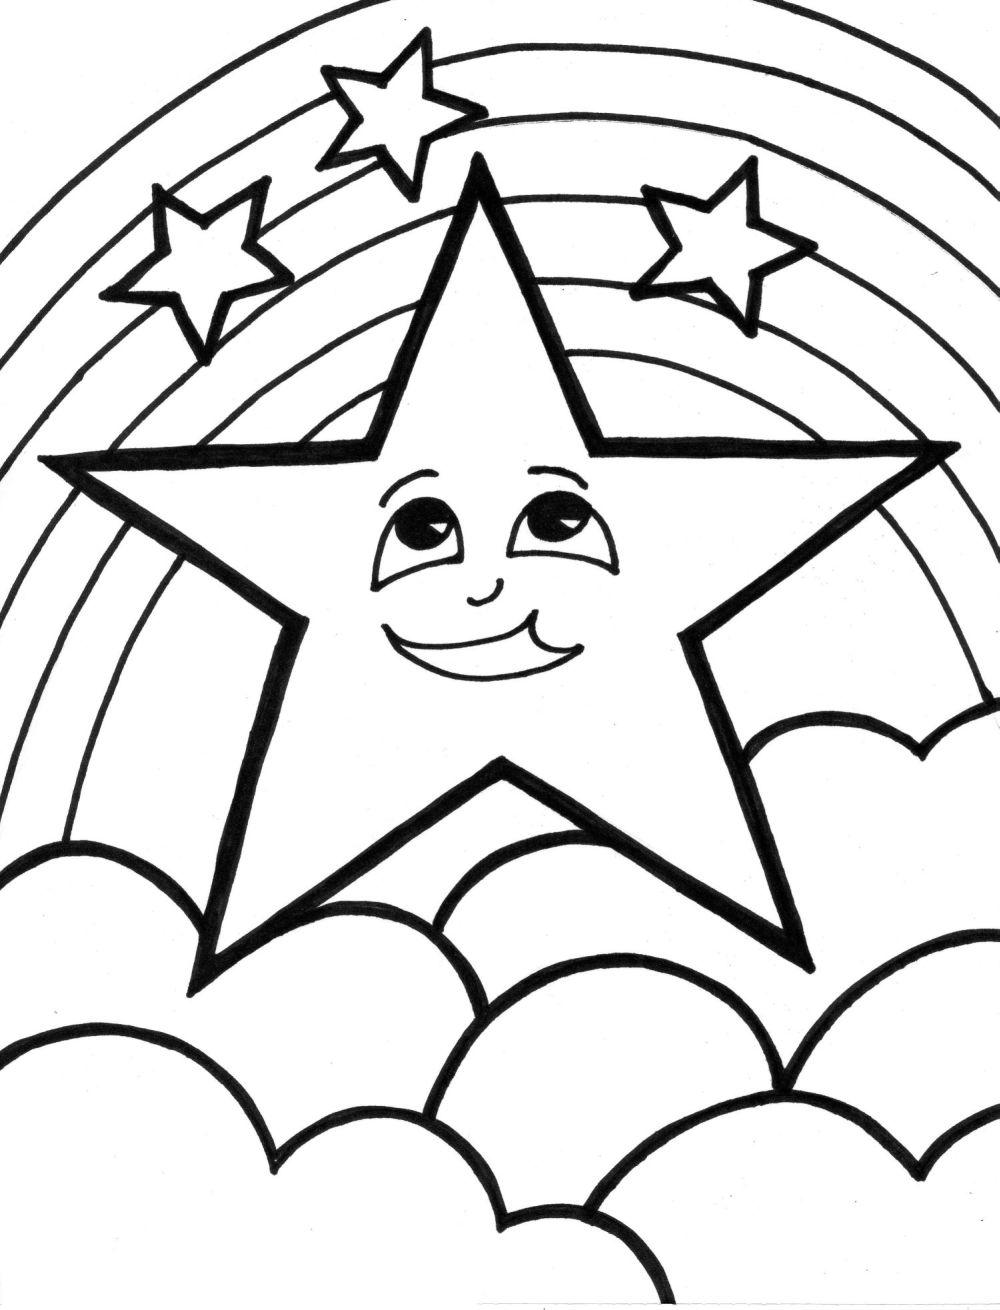 star shape coloring page five pointed christmas star shape coloring page star shape page coloring